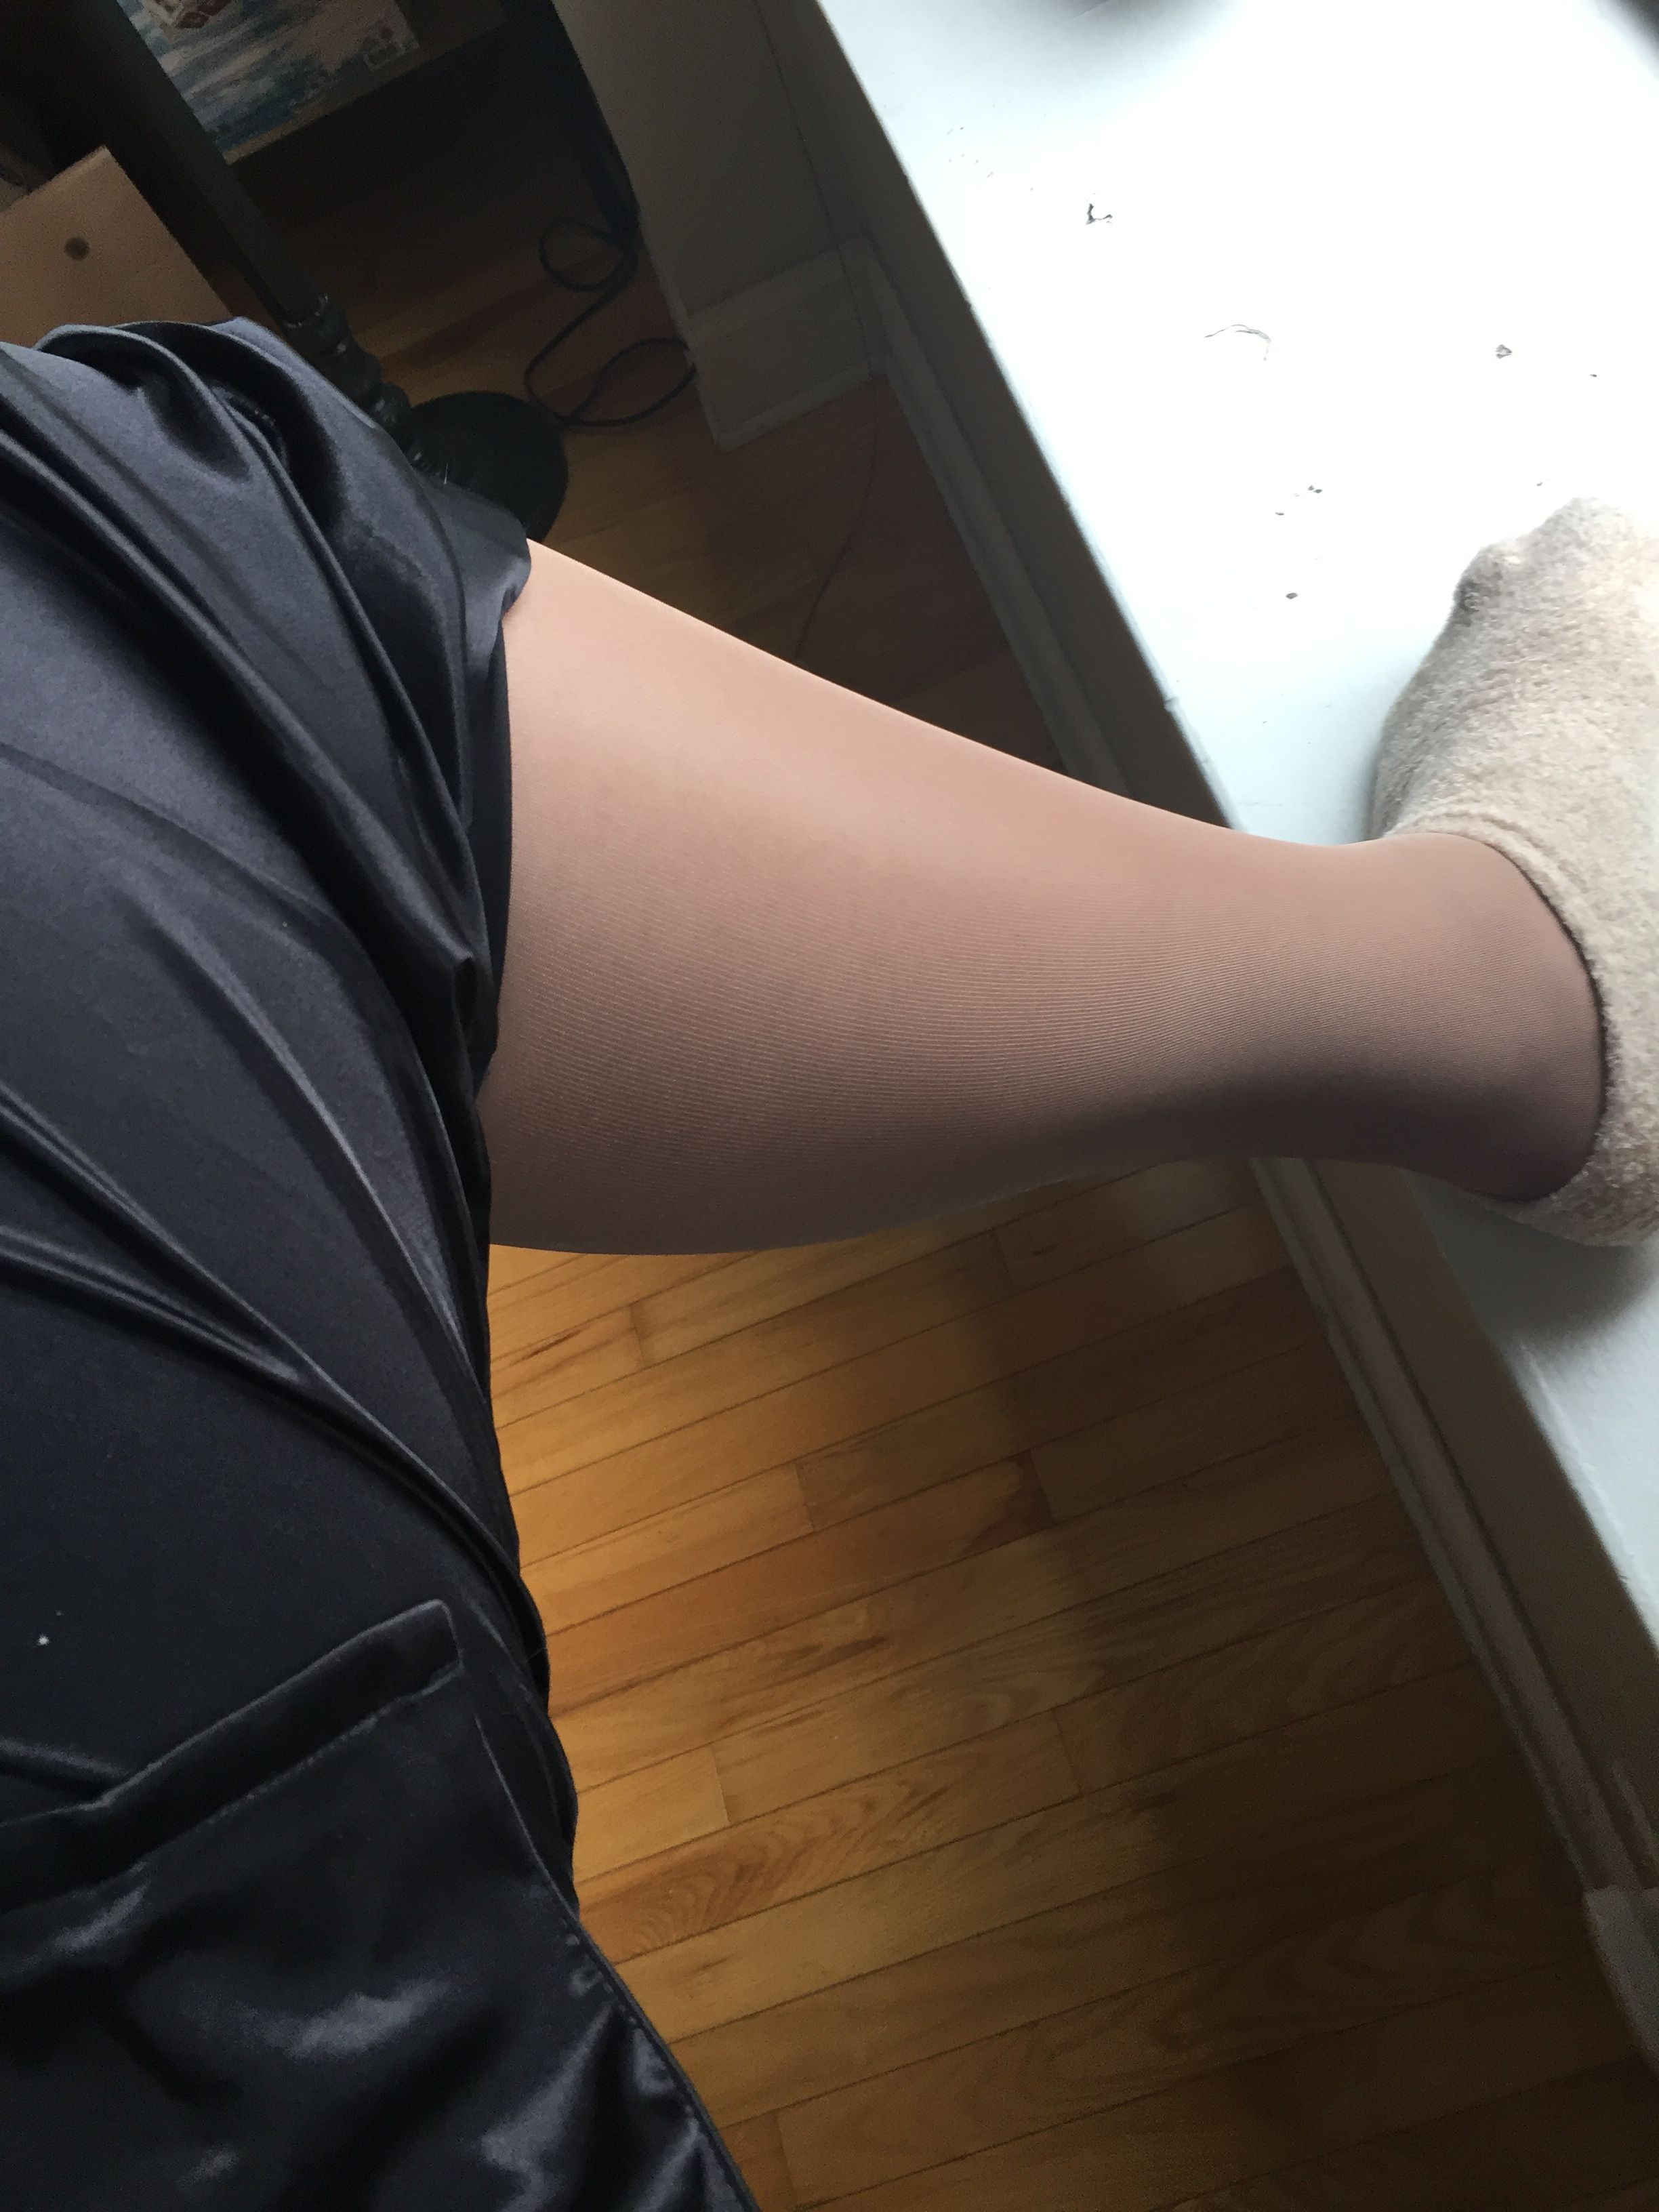 Can Shaved nylon stockings